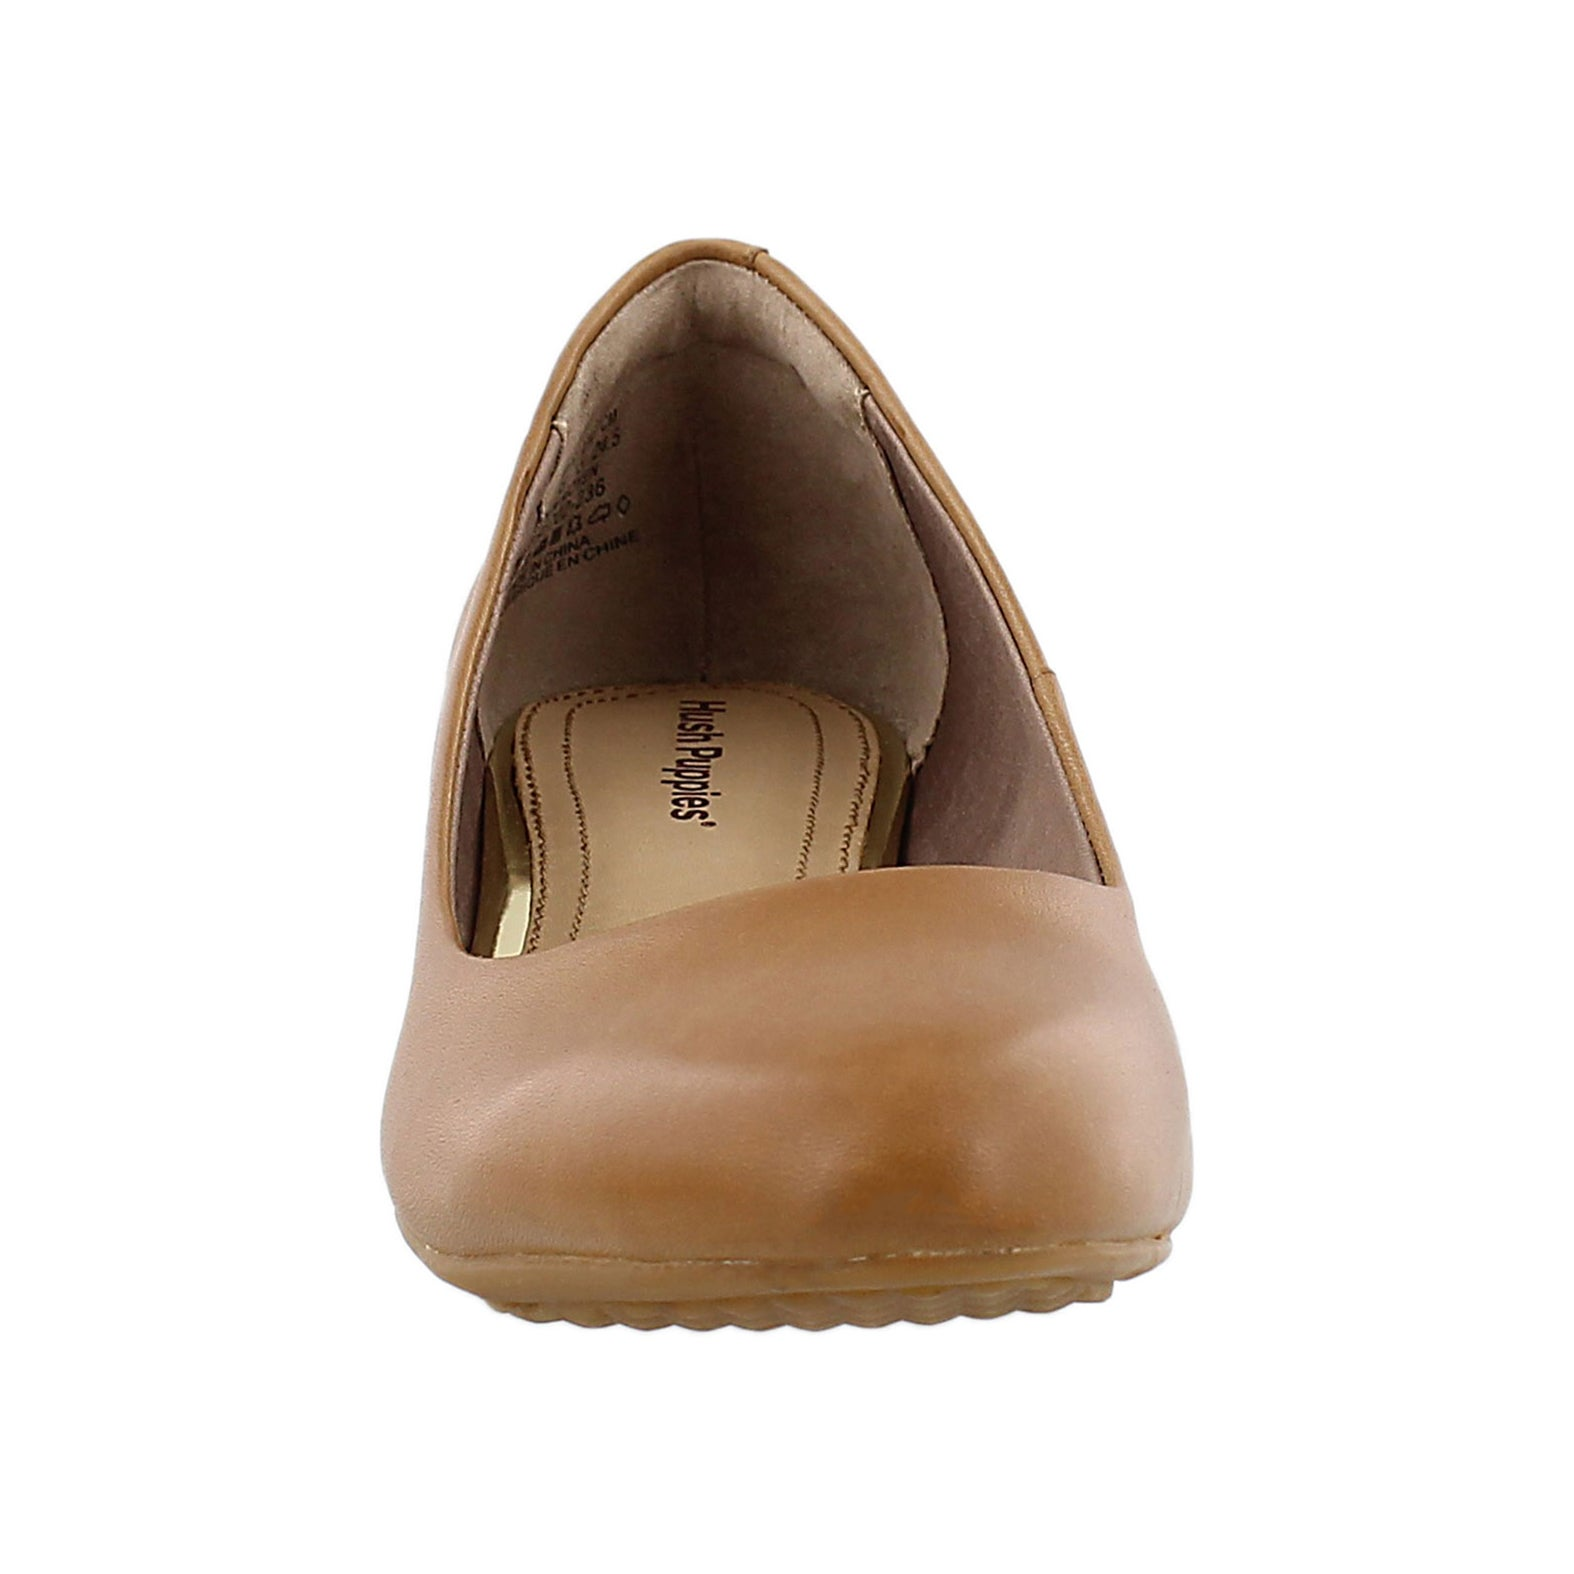 Lds Dot Admire tan wedge dress shoe